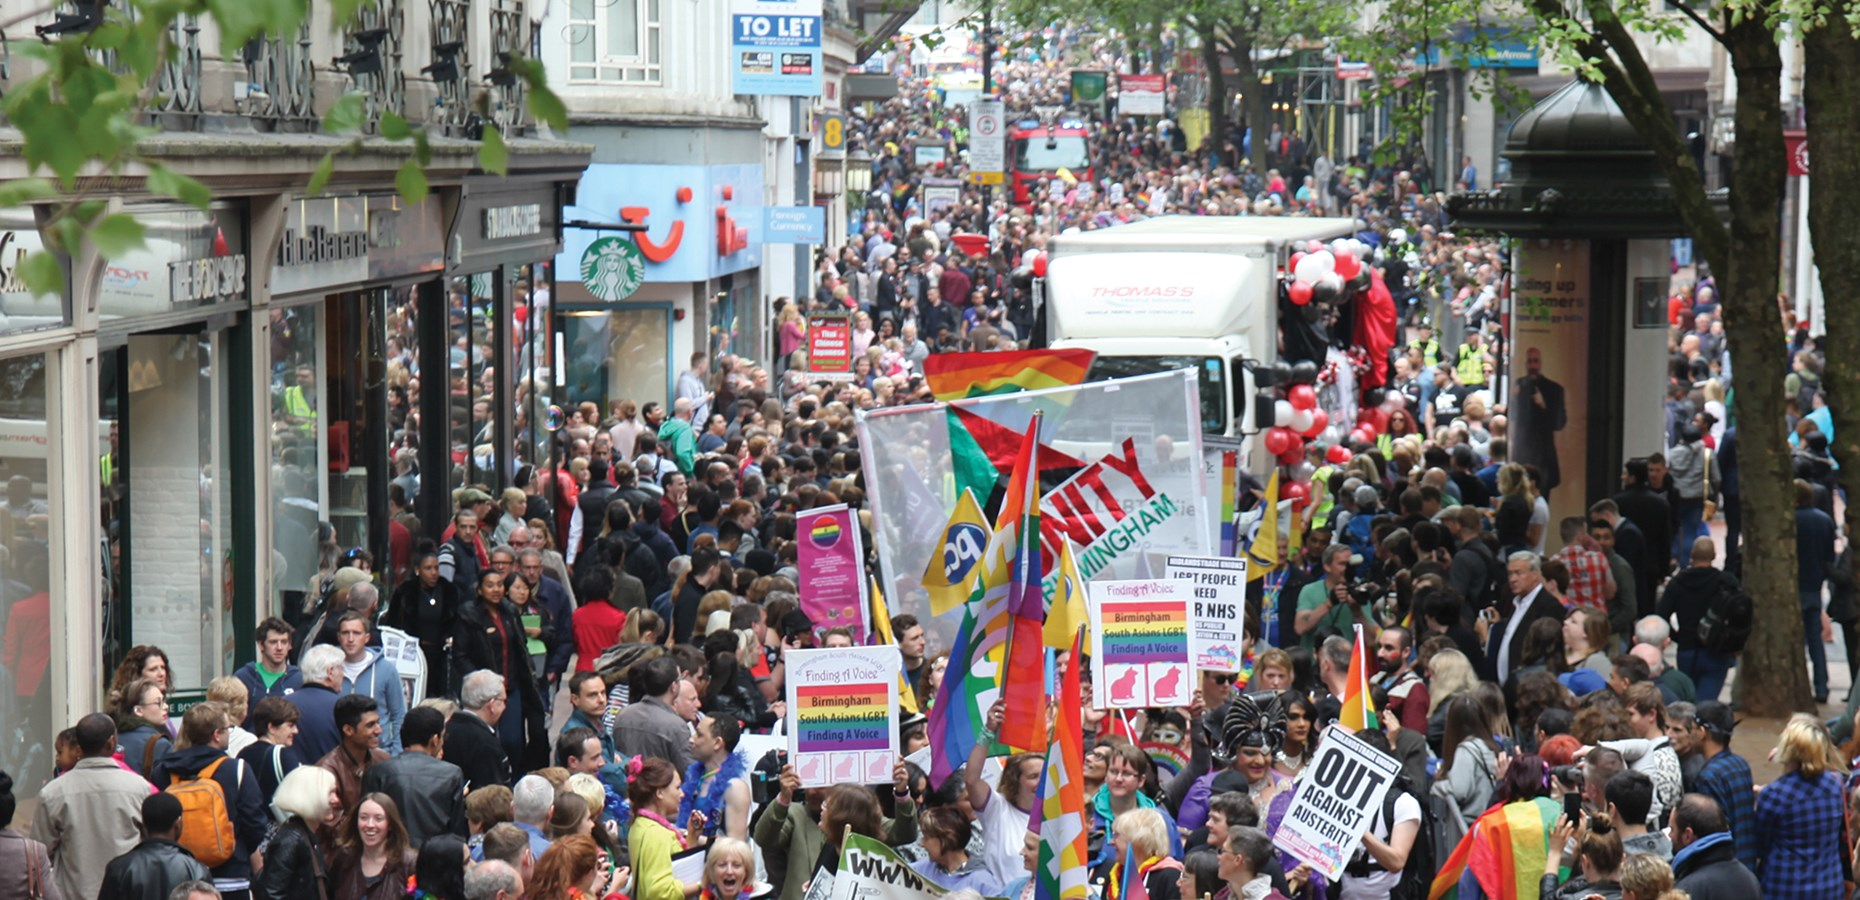 A photograph of Birmingham Pride from above